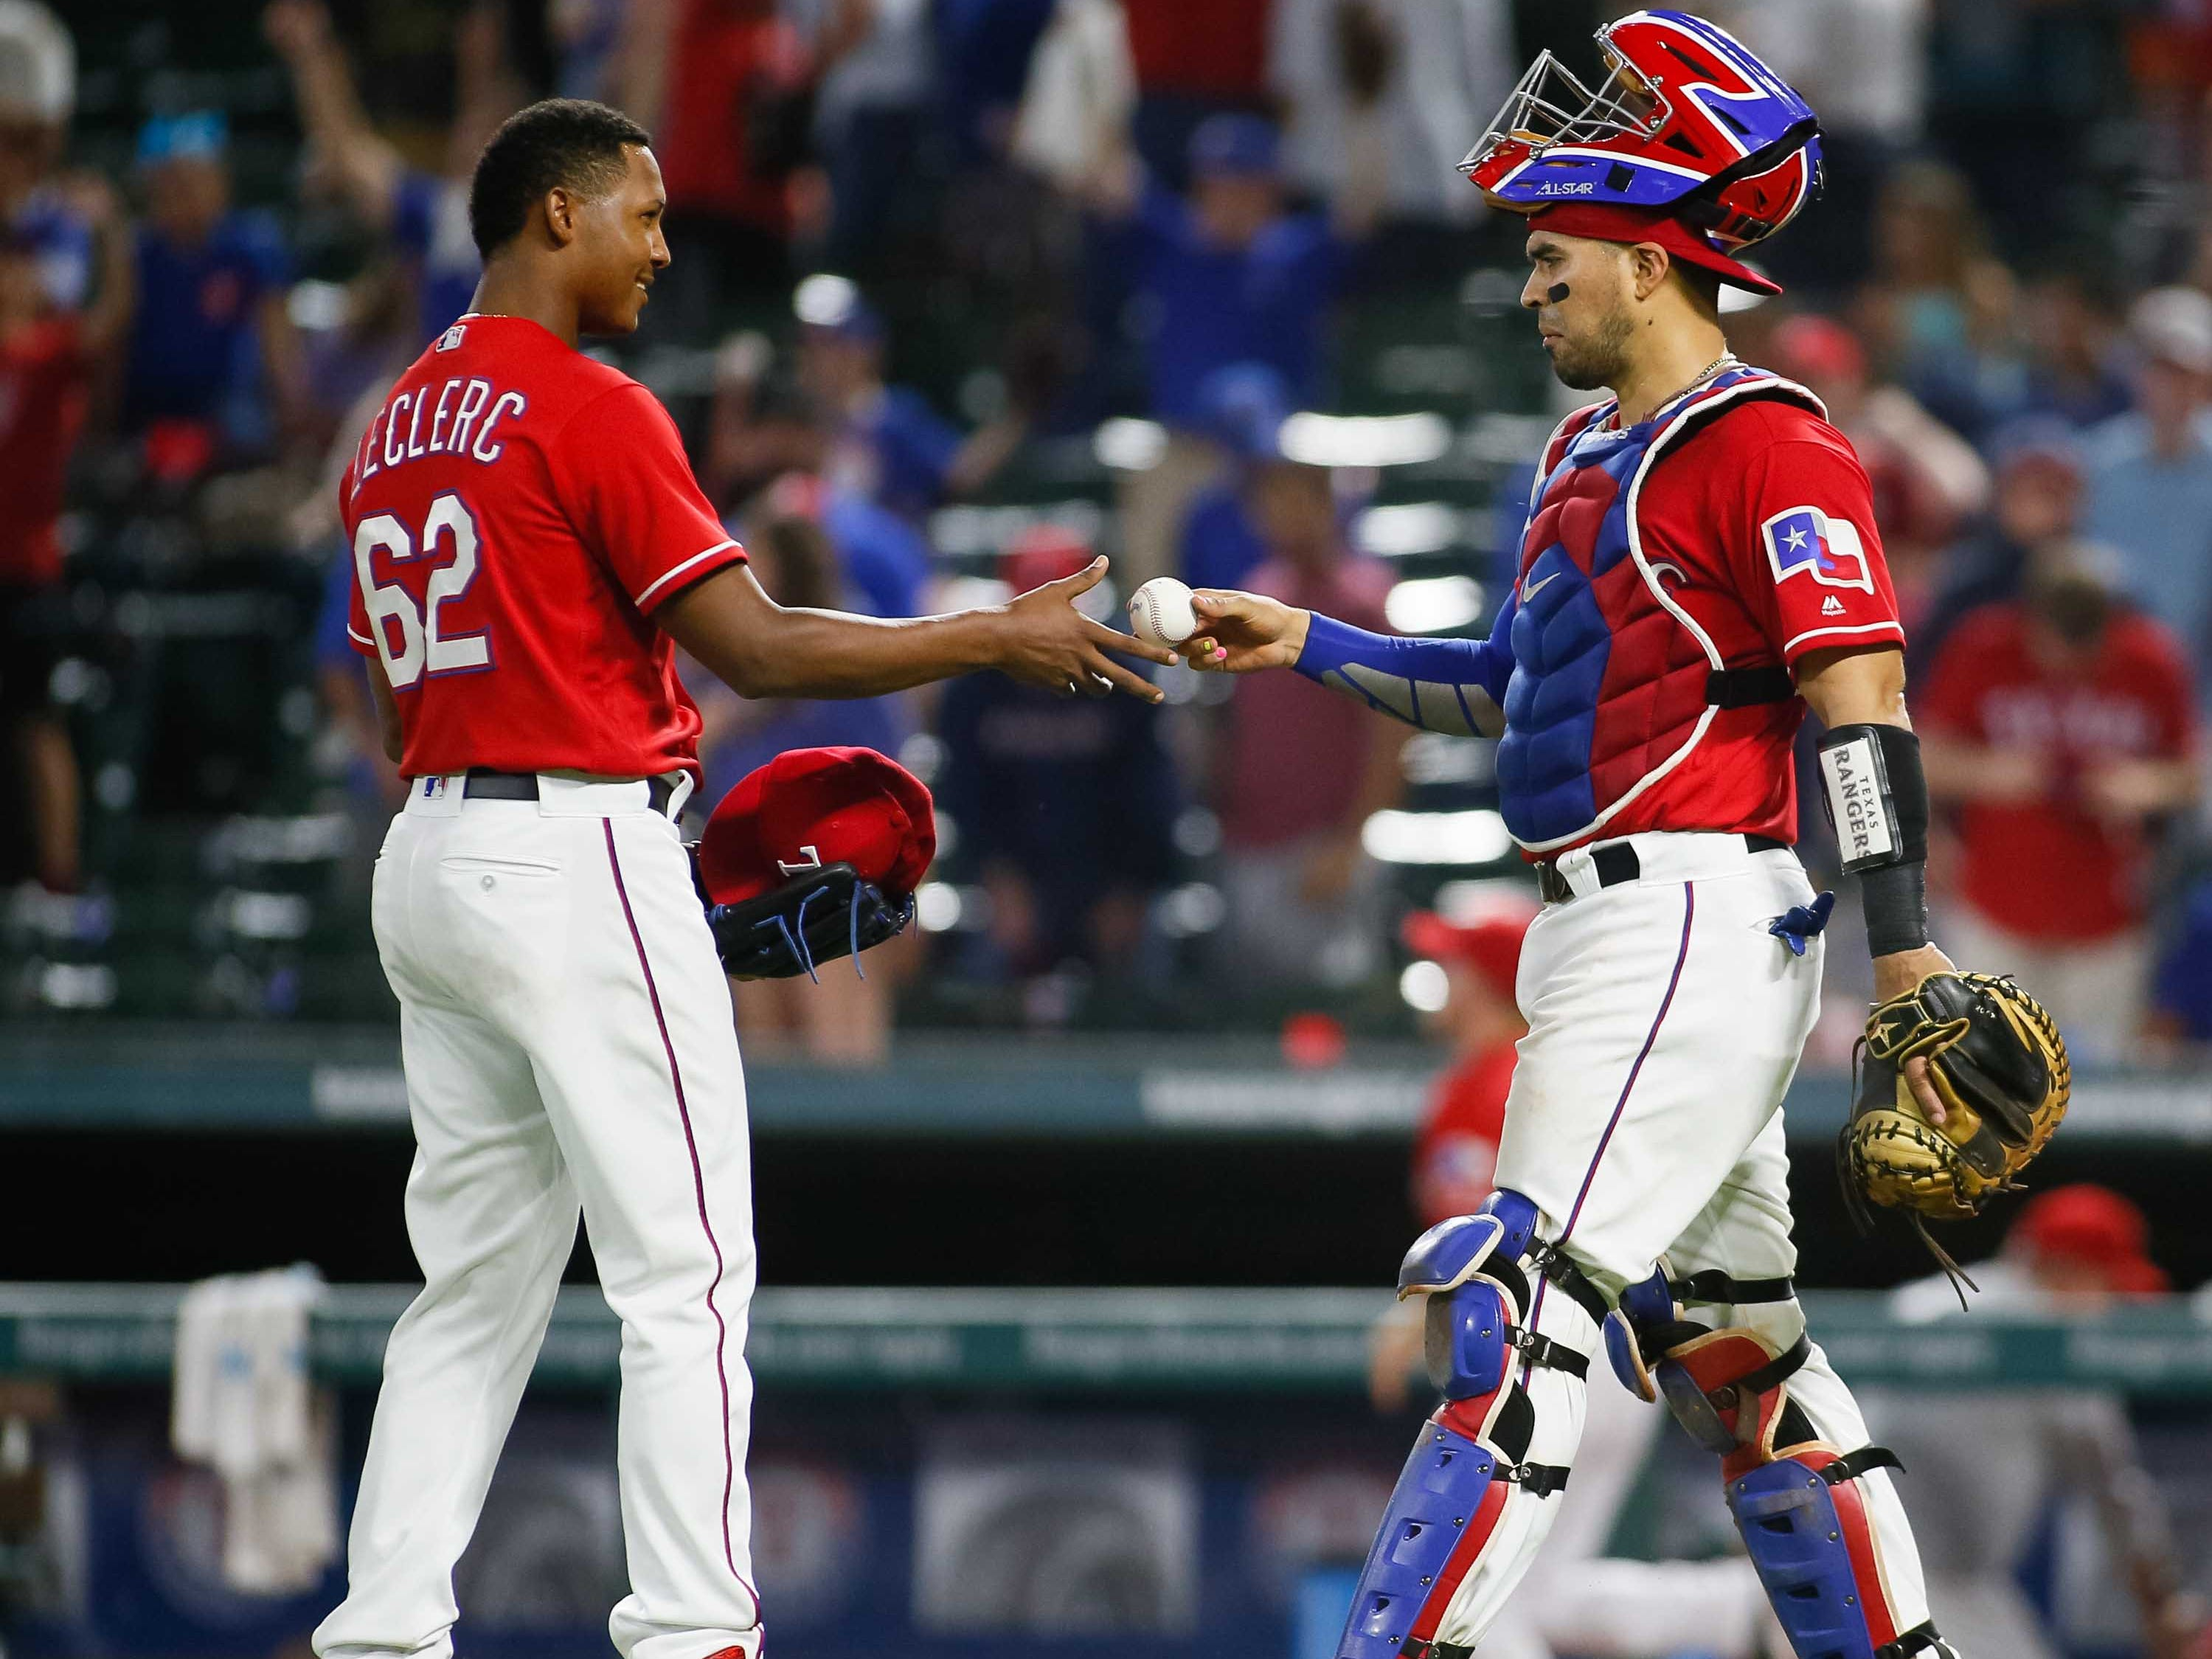 Aug 13, 2018; Arlington, TX, USA; Texas Rangers catcher Robinson Chirinos (61) hands relief pitcher Jose Leclerc (62) the ball after recording the final out against the Arizona Diamondbacks at Globe Life Park in Arlington. Mandatory Credit: Ray Carlin-USA TODAY Sports